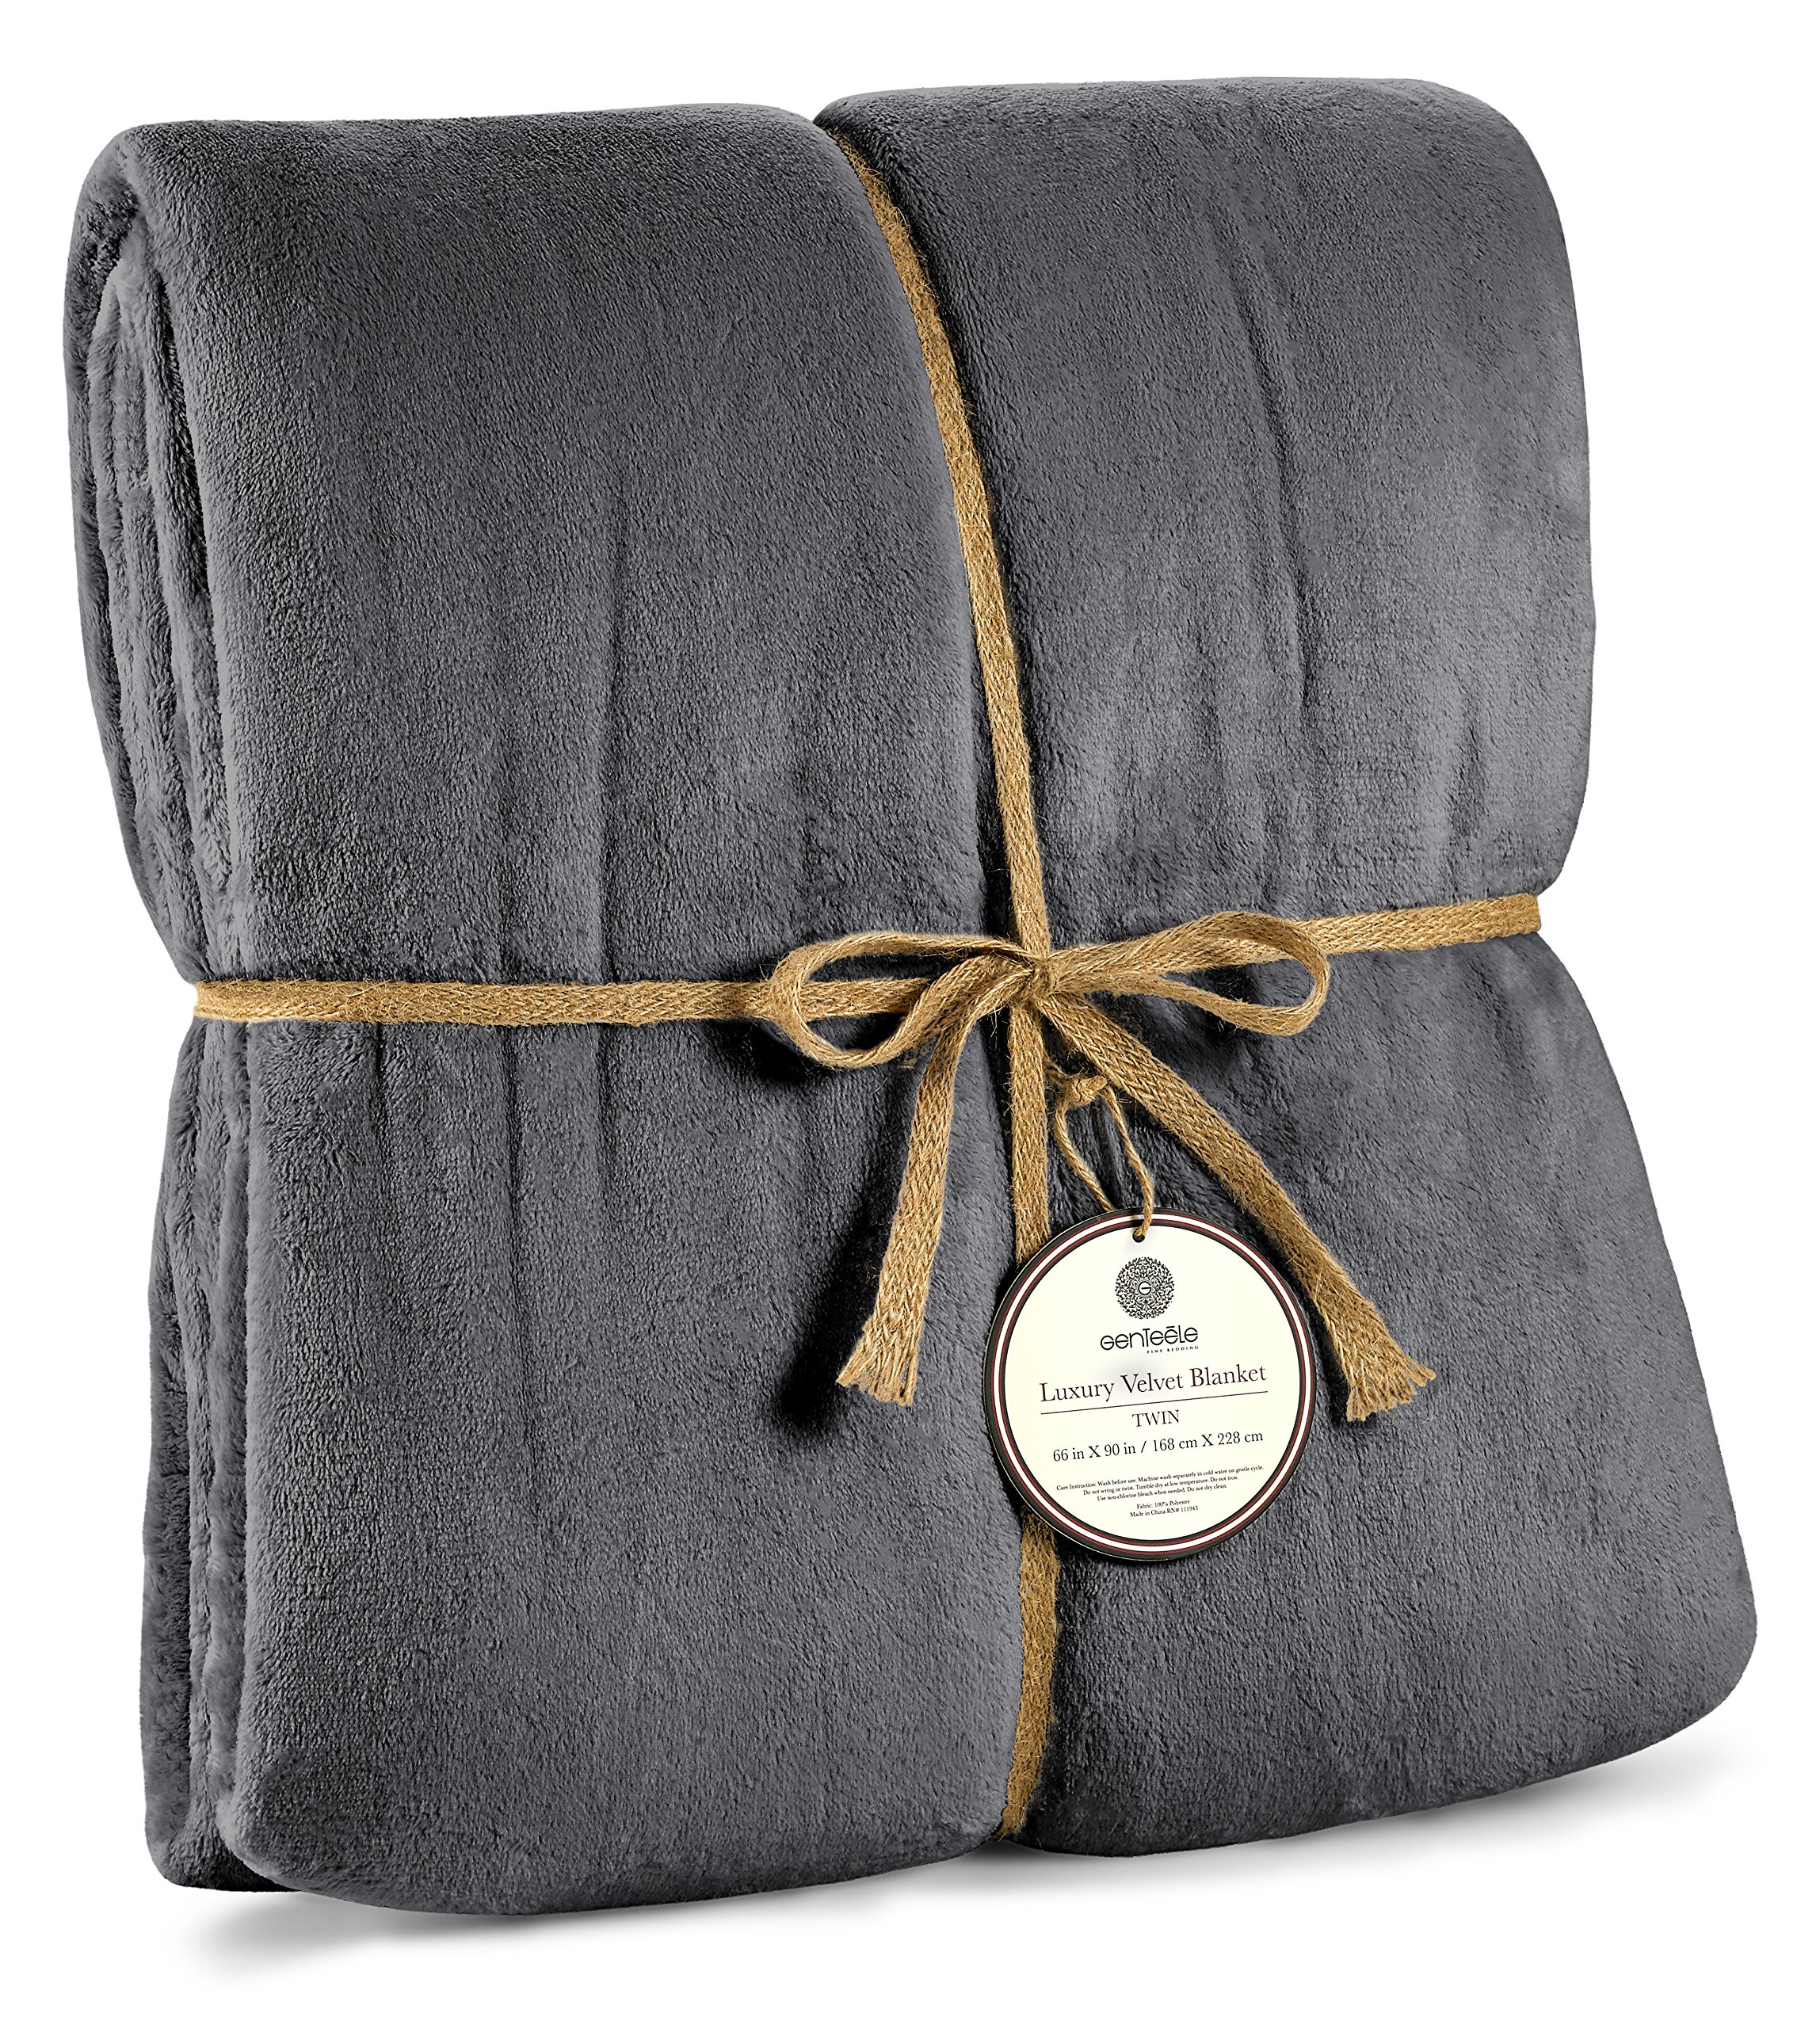 Genteele Luxurious Velvet Fleece Blanket Ultra Plush Soft Cozy Warm Bed Blanket, Twin 66'' X 90'', Charcoal